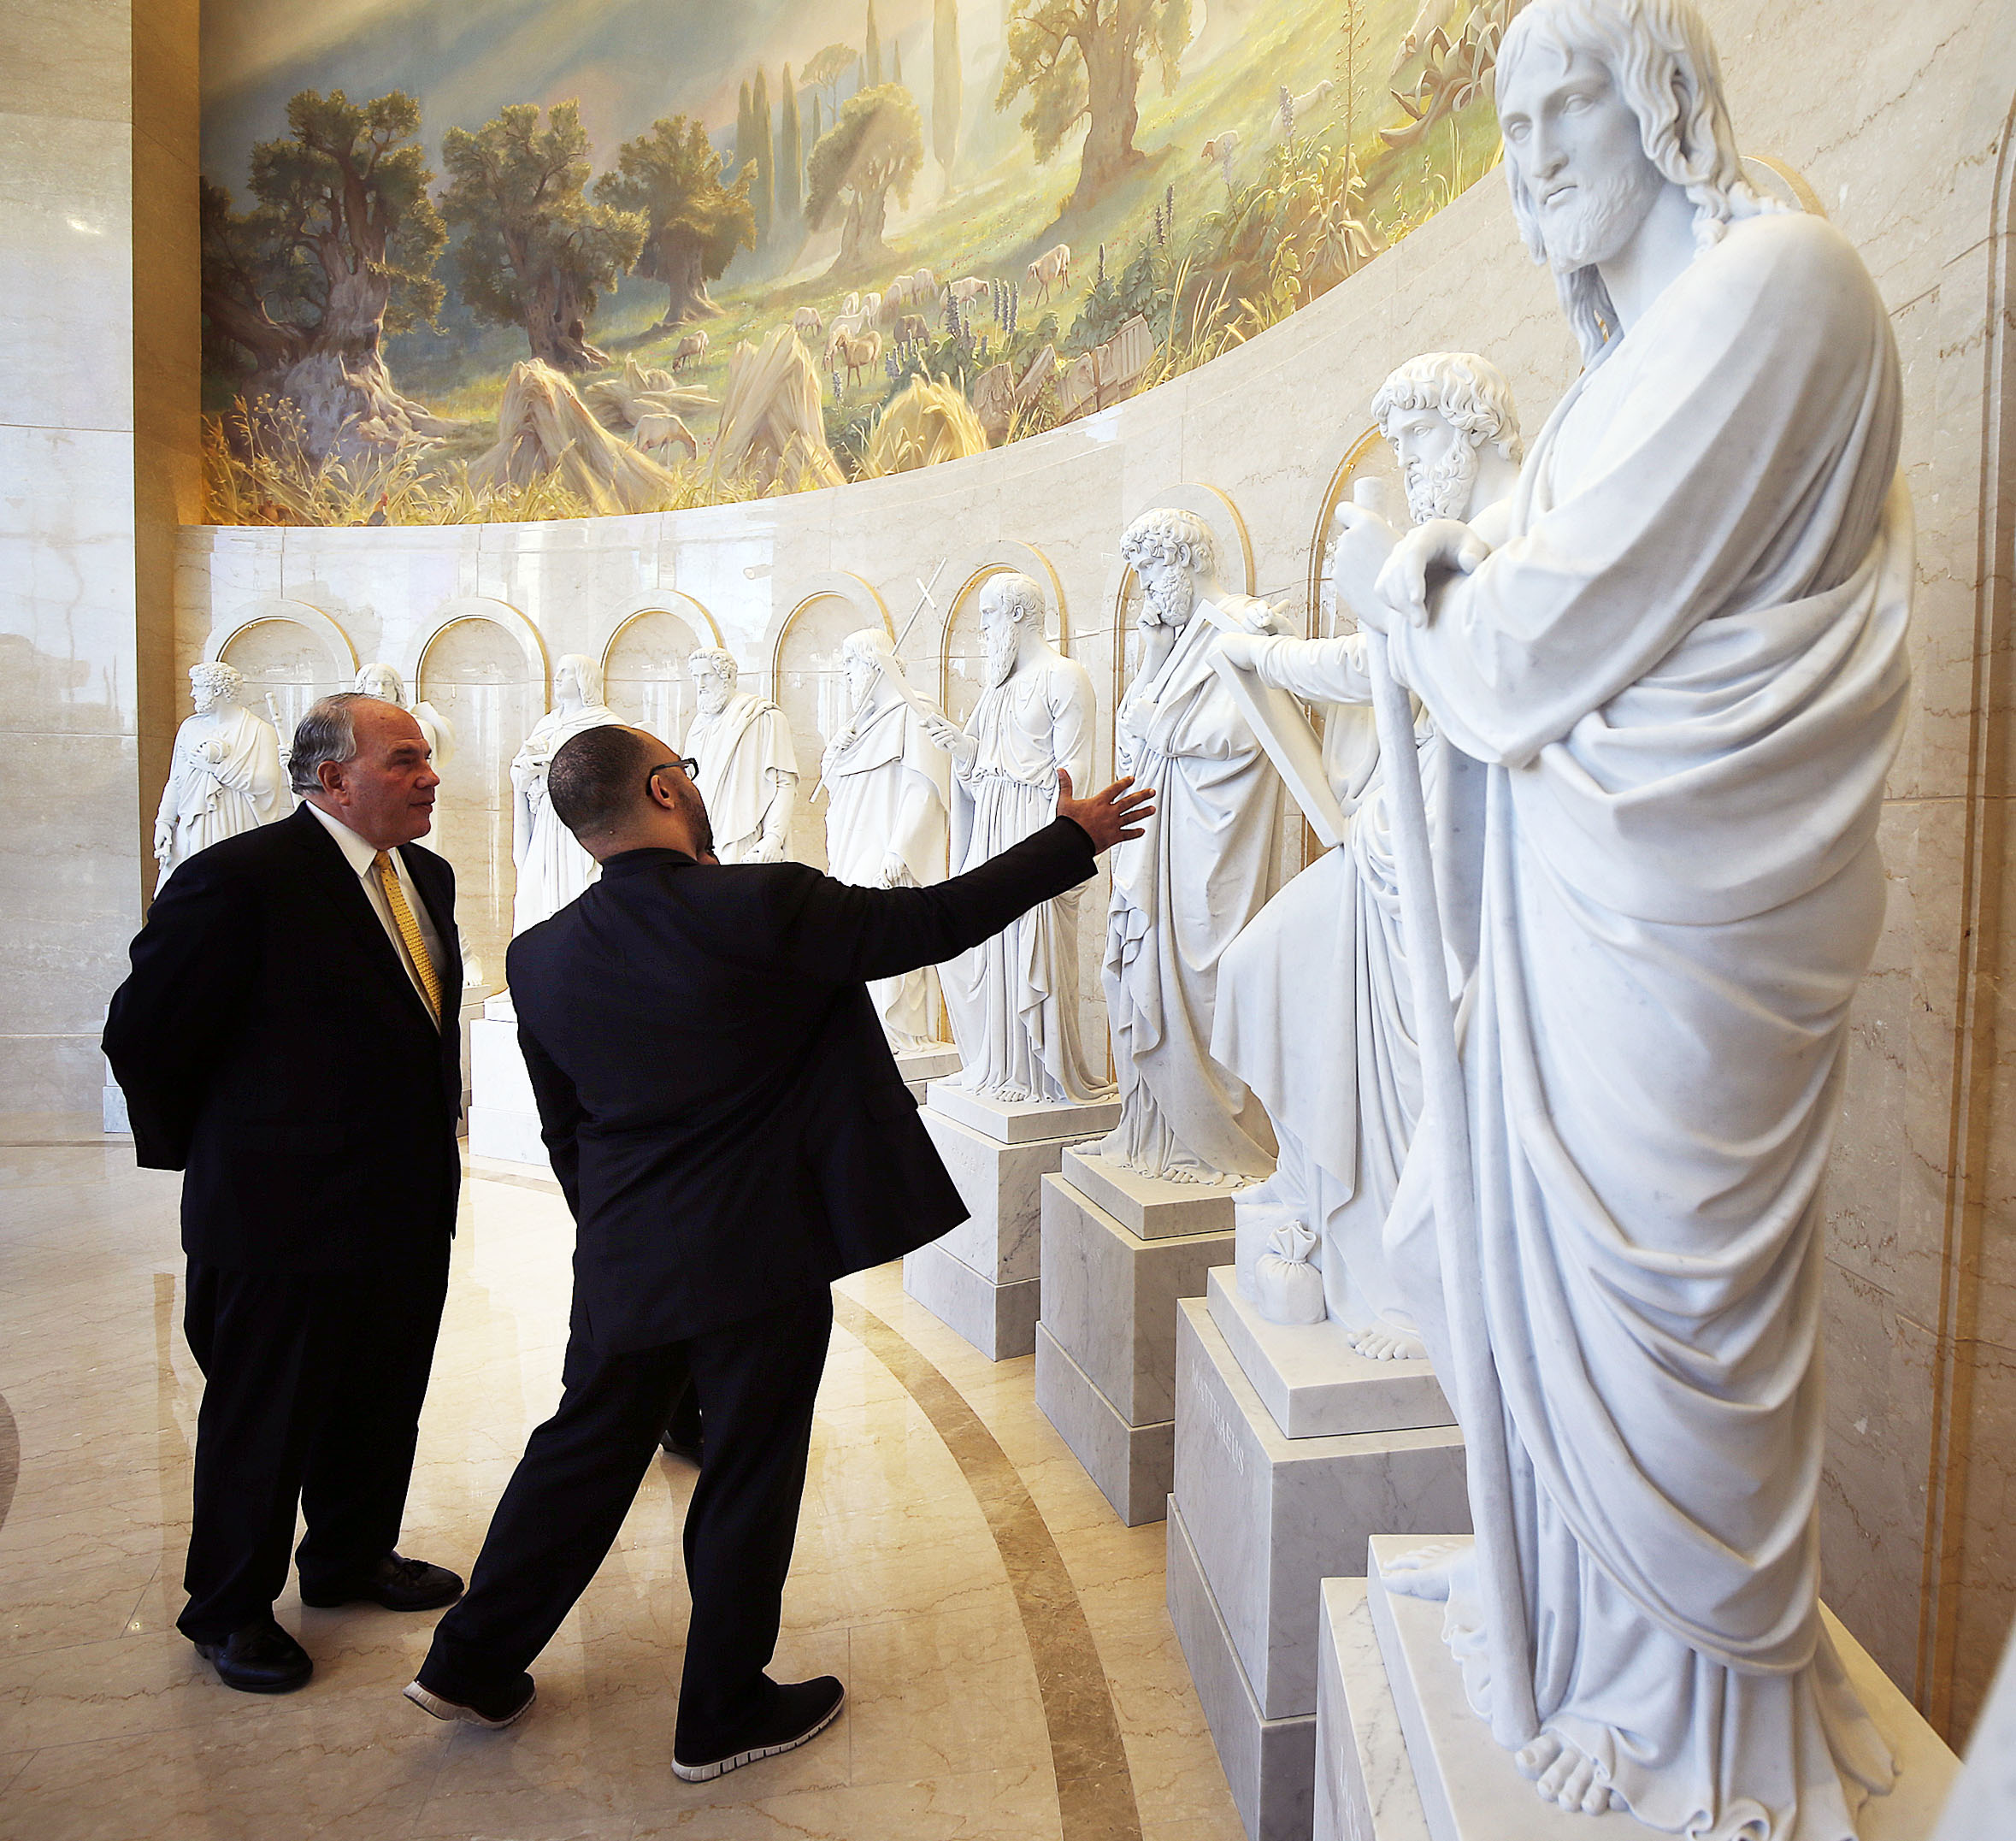 Elder Ronald A. Rasband, left, of The Quorum of the Twelve Apostles of The Church of Jesus Christ of Latter-day Saints, talks with Pastor Chris Zacharias of the John Wesley A.M.E. Zion Church as they tour the Rome Italy Temple Visitors' Center on Tuesday, Jan. 15, 2019.